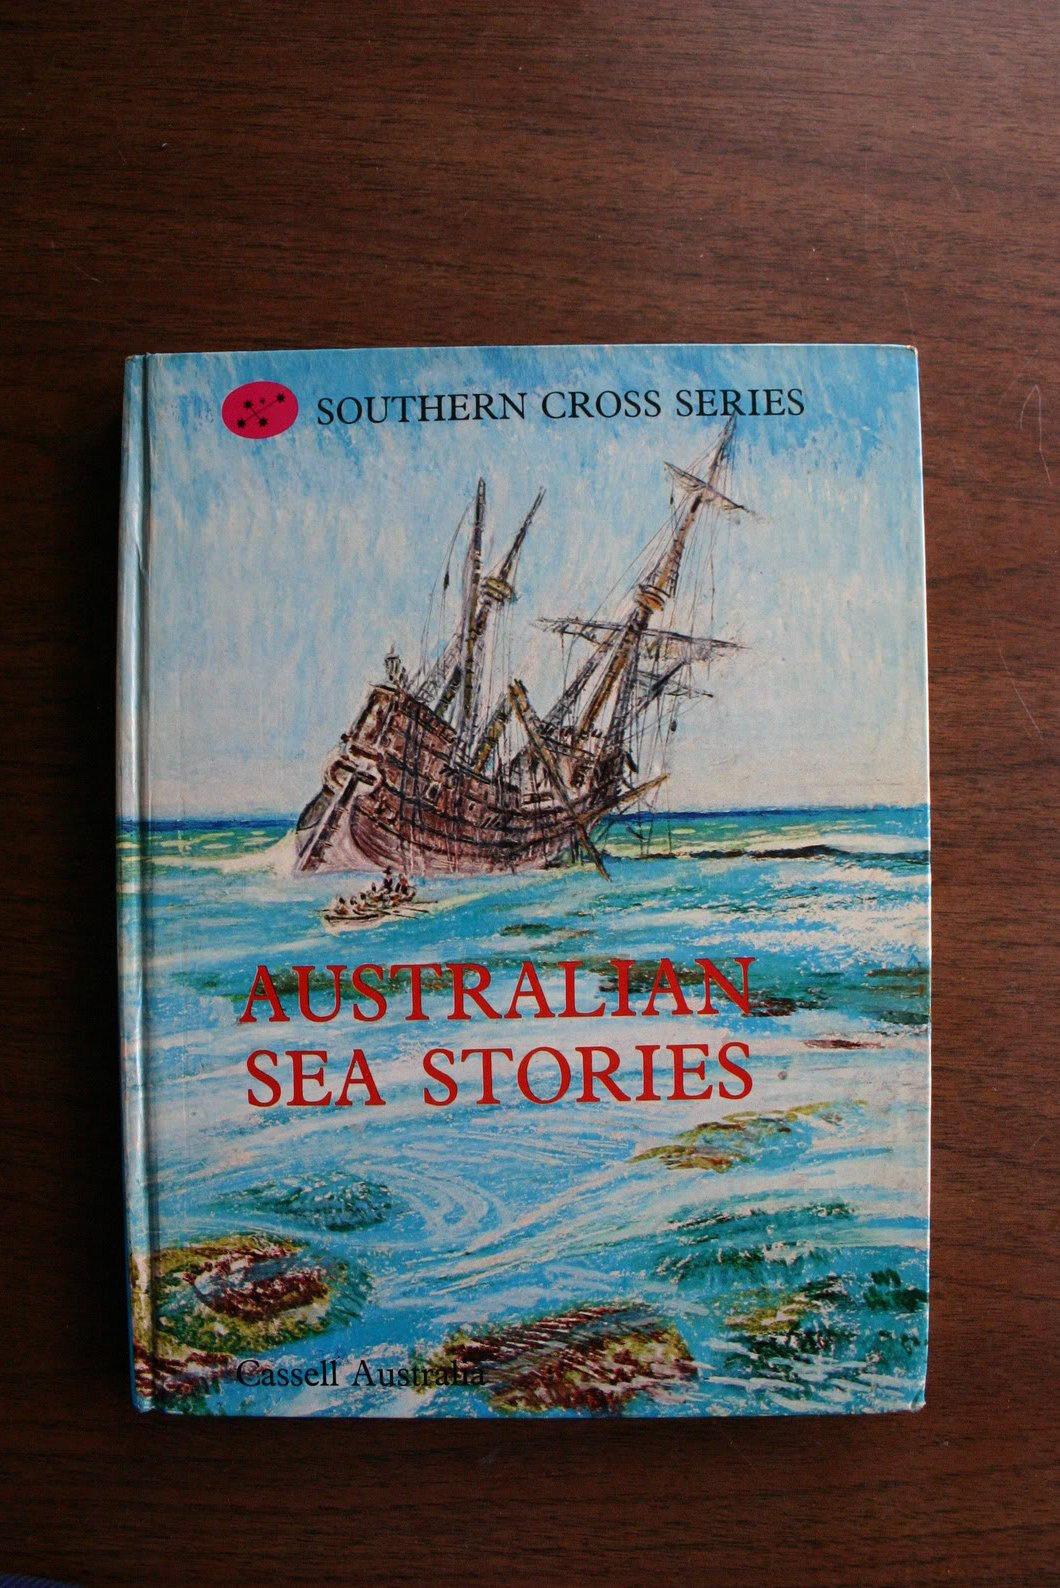 Australian Sea Stories (Southern cross series)